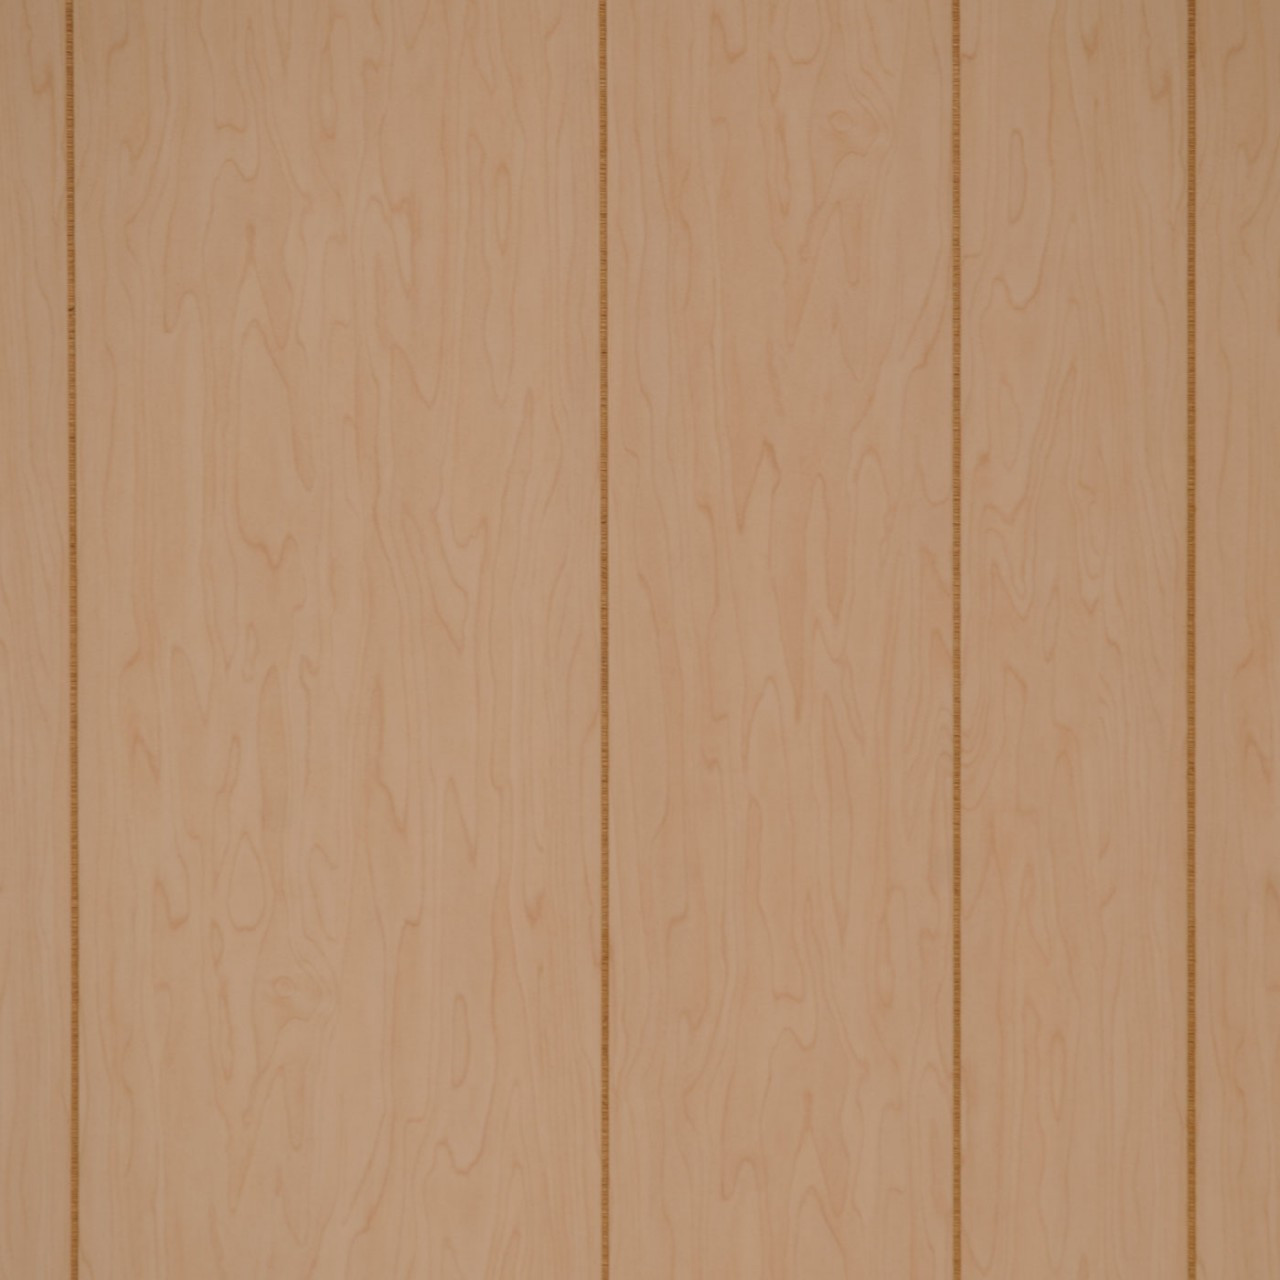 Wood Paneling Brittany Birch Wall Paneling Plywood Panels